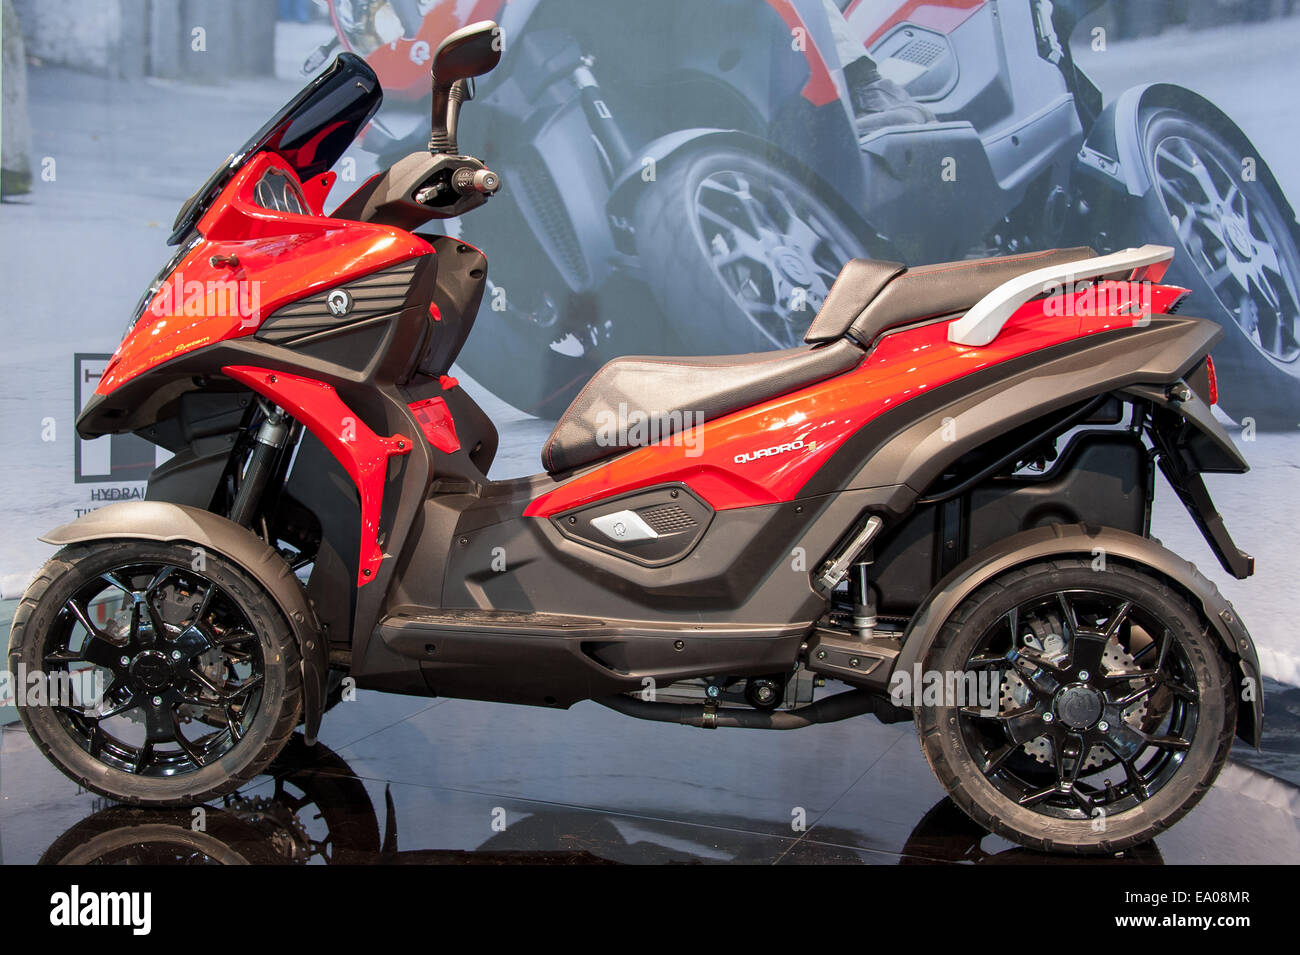 Milan (Italy), Tuesday 4th November 2014 - In the first day of the Eicma bike show, Quadro presented its Quadro4 - Stock Image